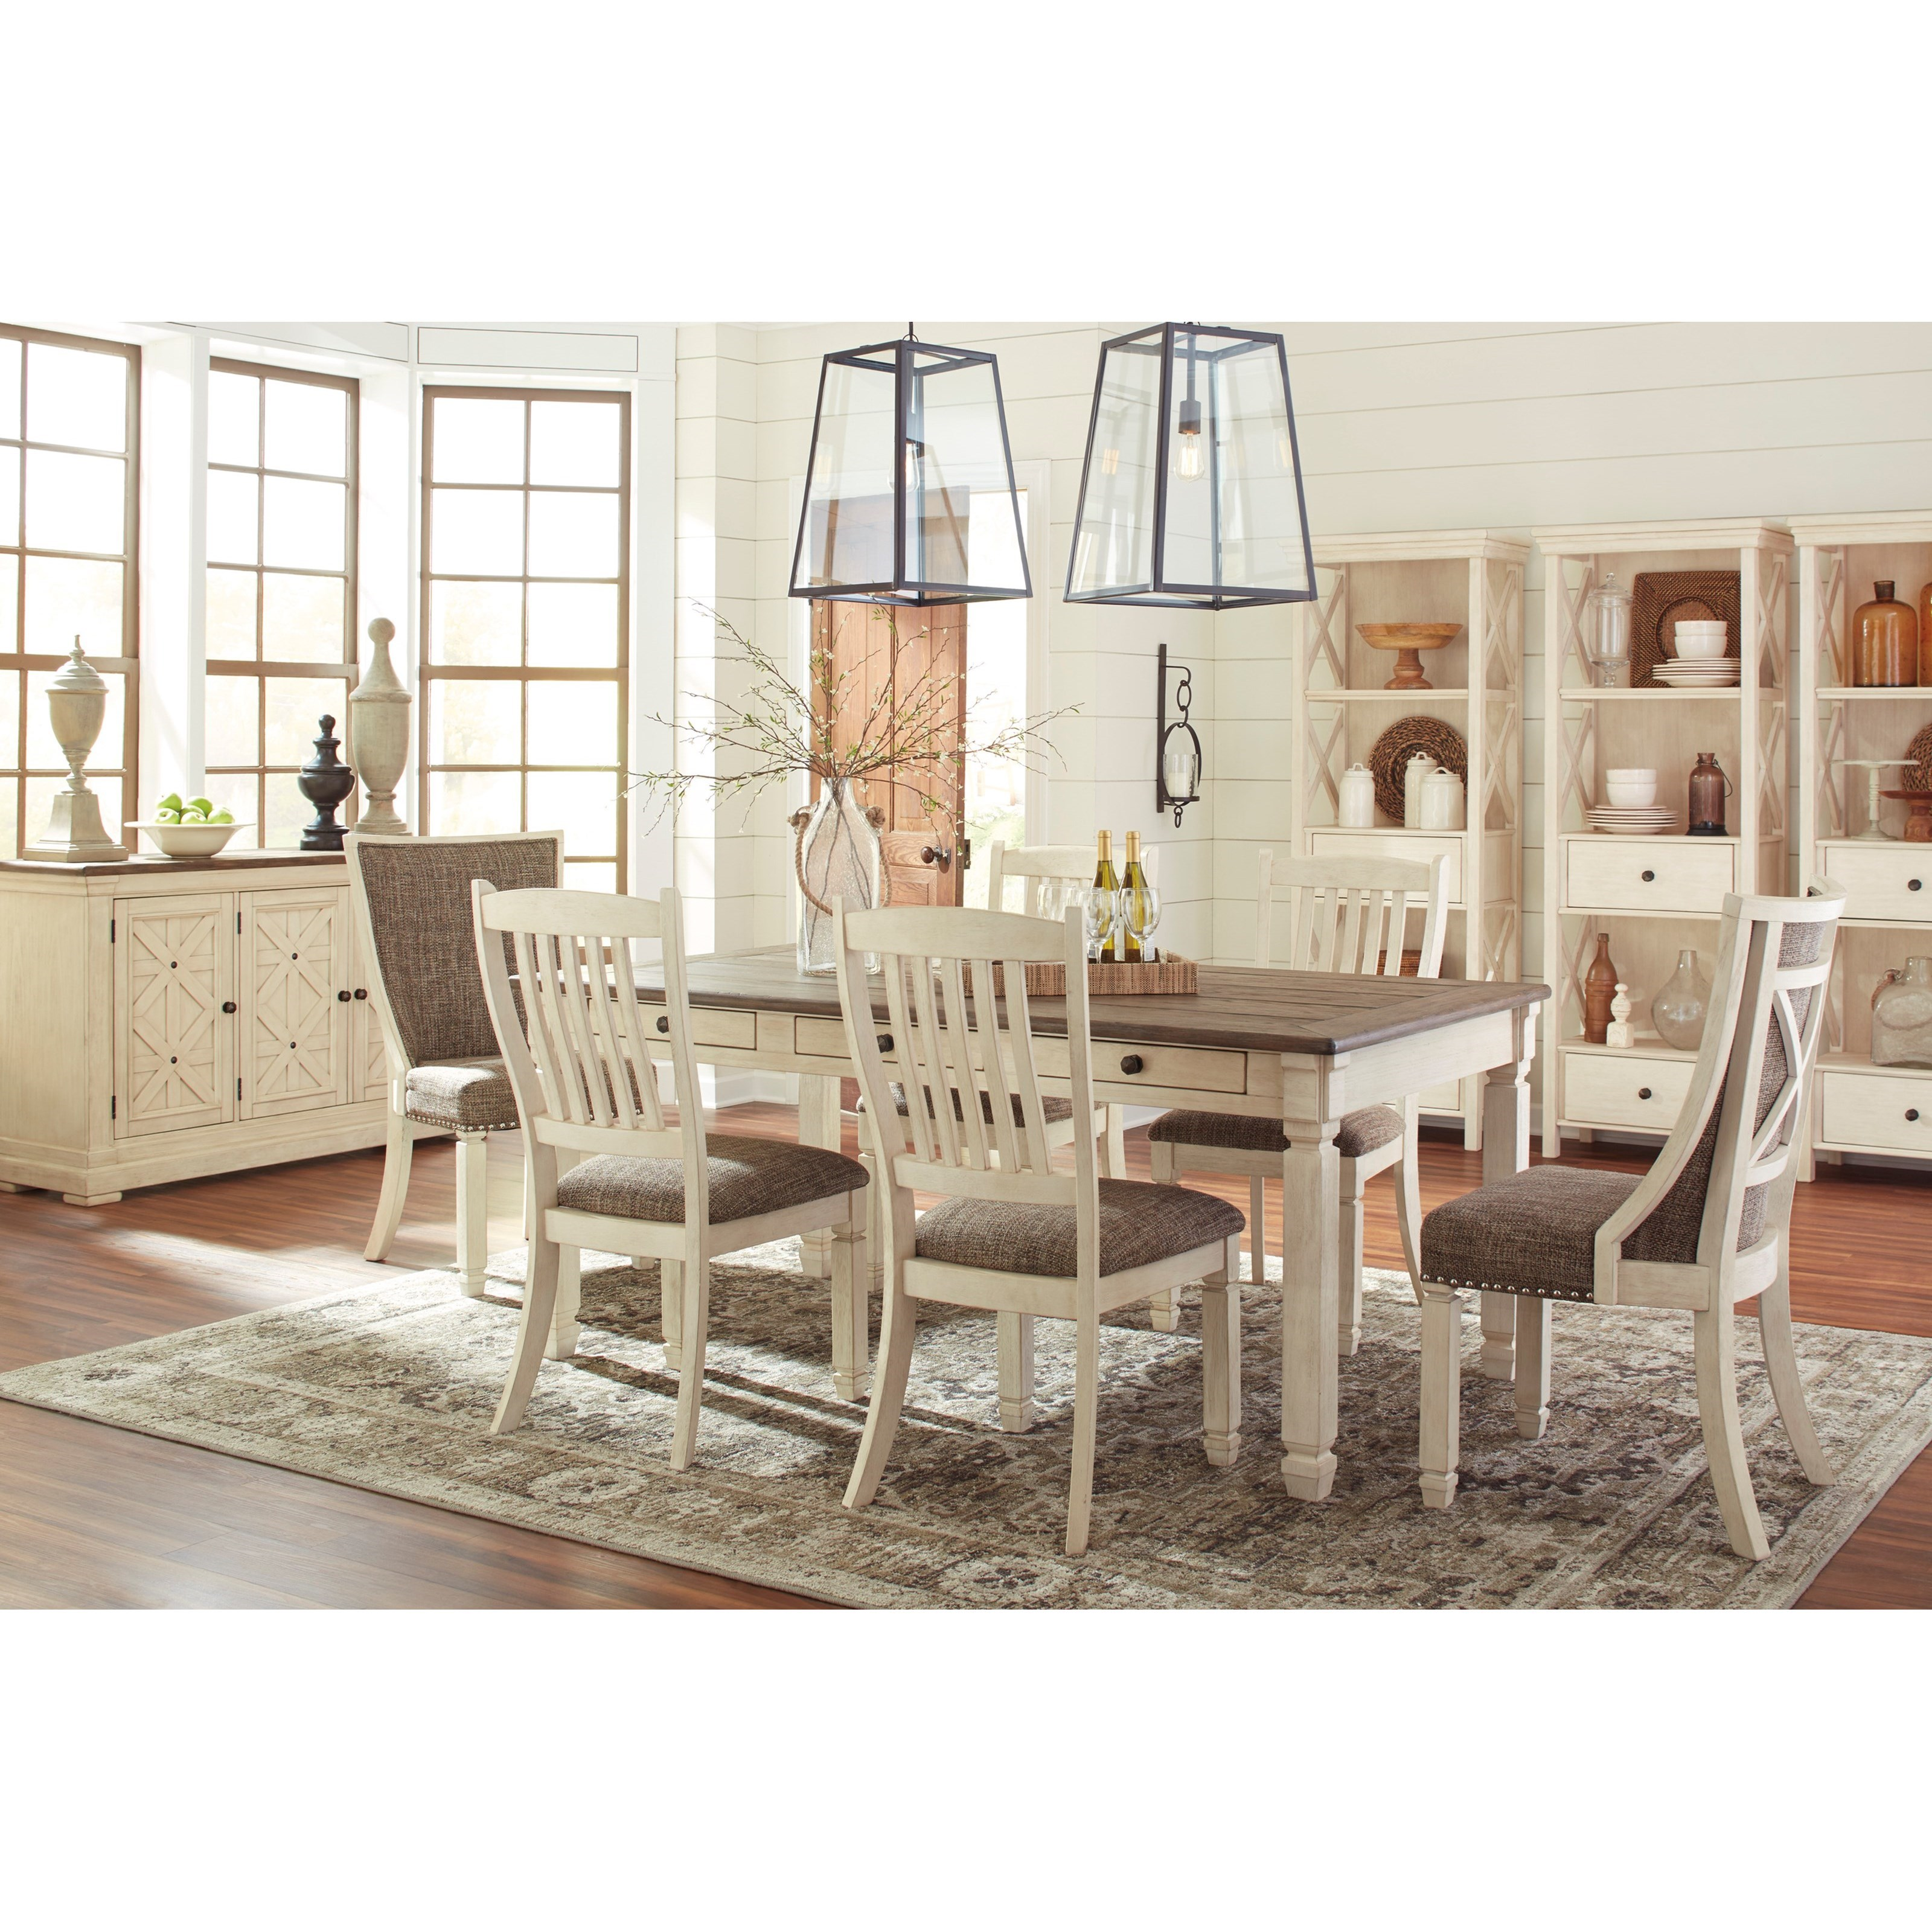 Bolanburg Formal Dining Room Group by Signature Design by Ashley at Sparks HomeStore